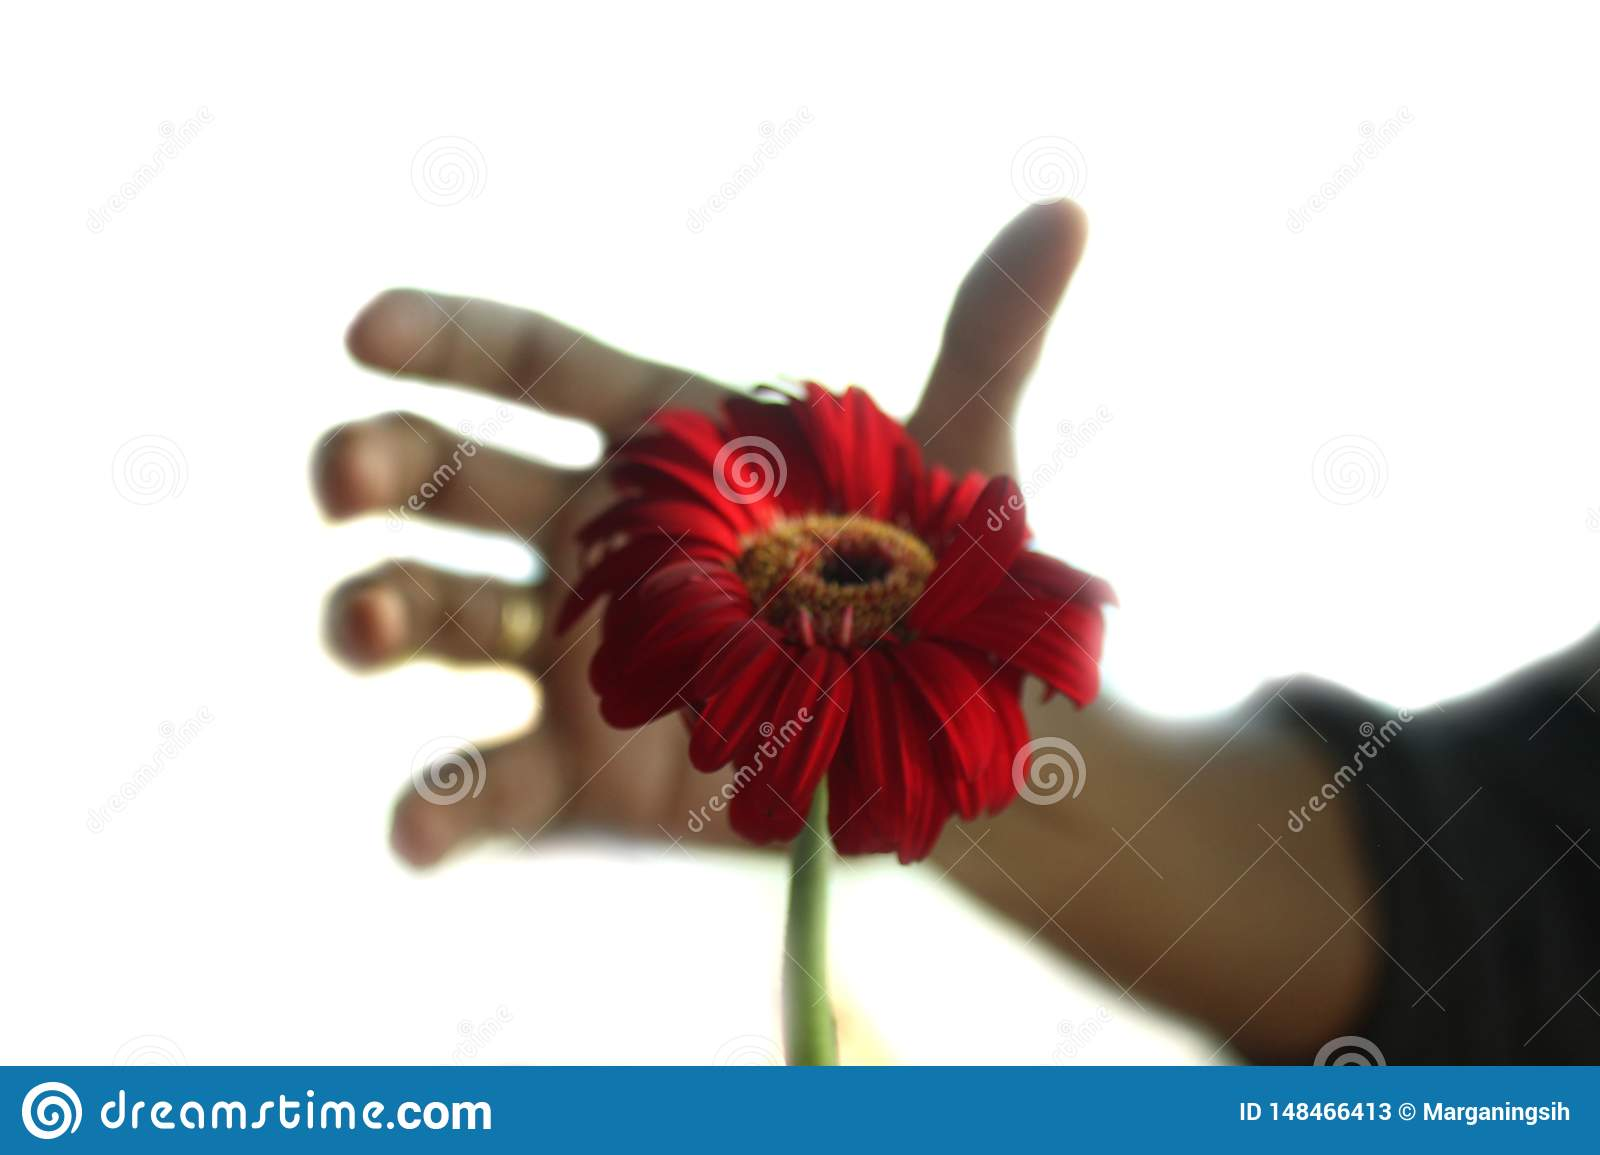 A single red flower head and a man fingers shadow in the background trying to reach the flower. Gerbera daisy flower, a perennial